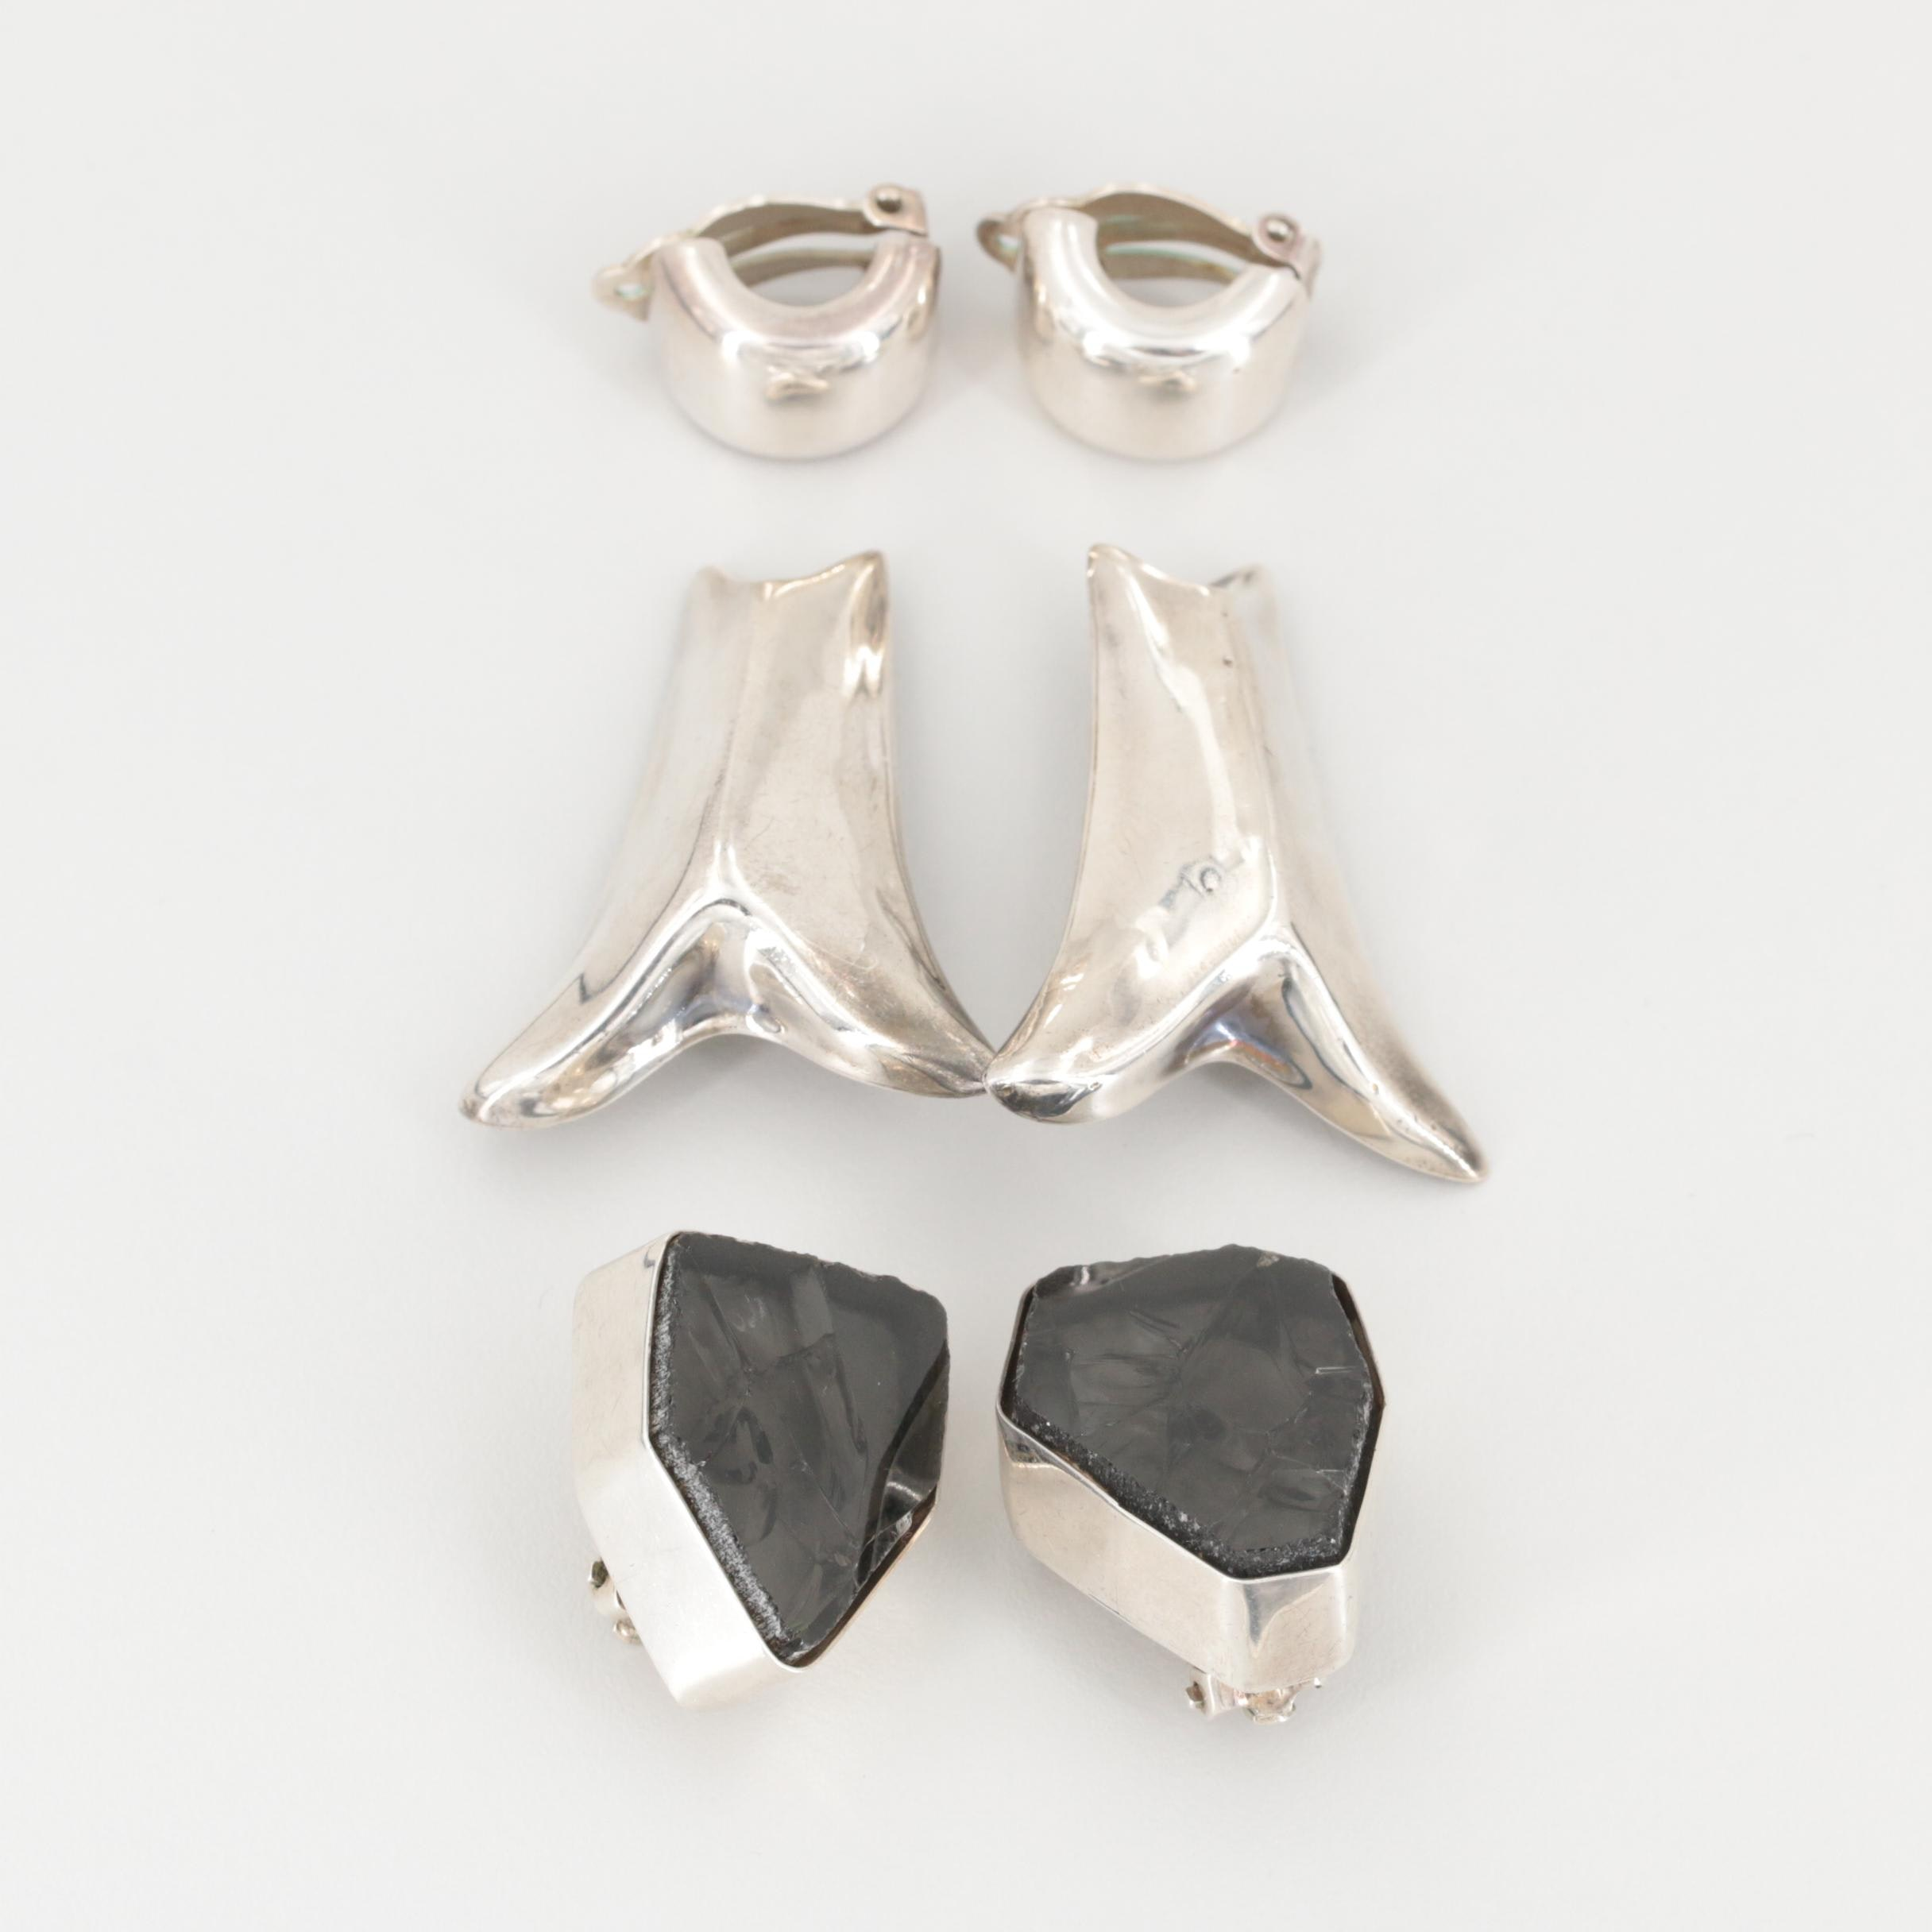 Vintage Mexican Sterling Silver Glass Clip-On Earrings